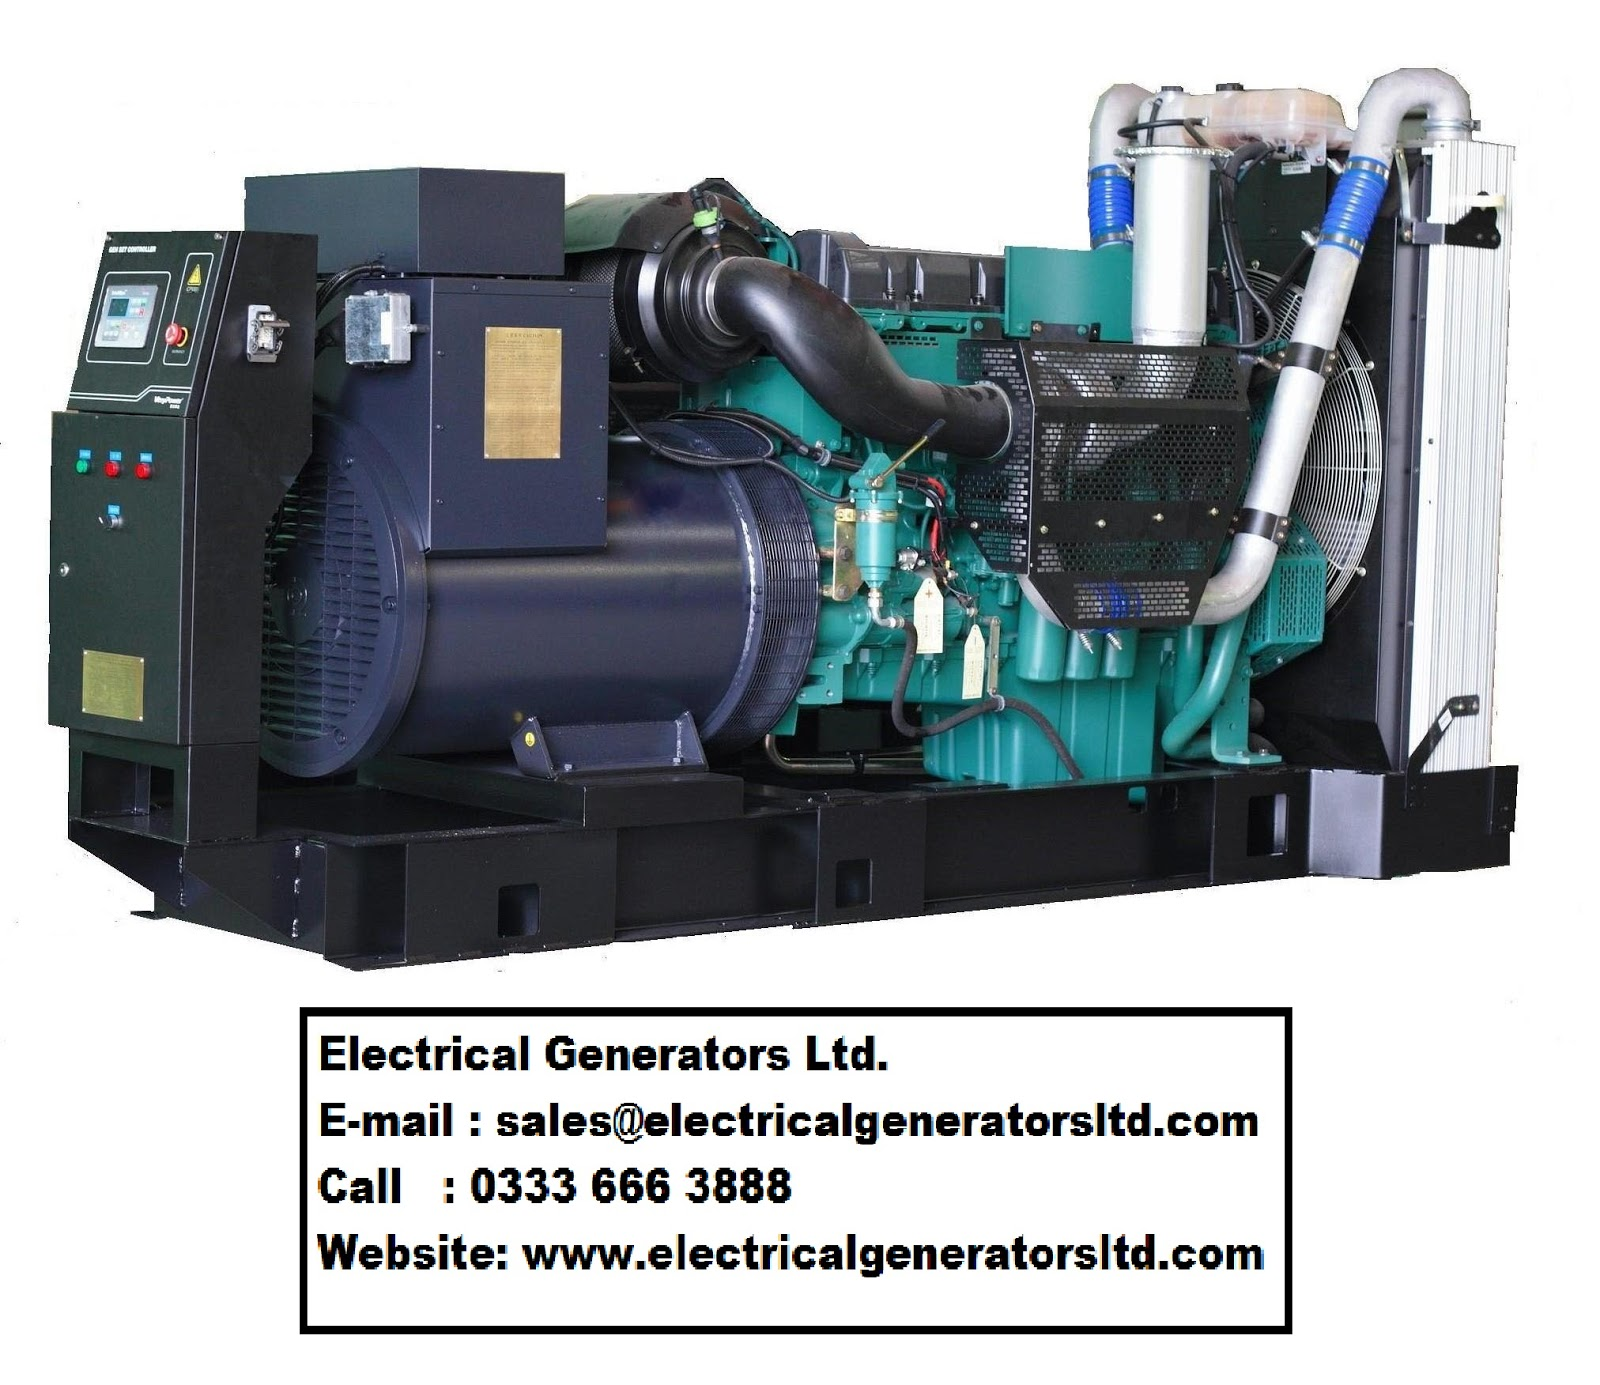 Electrical Generators Ltd